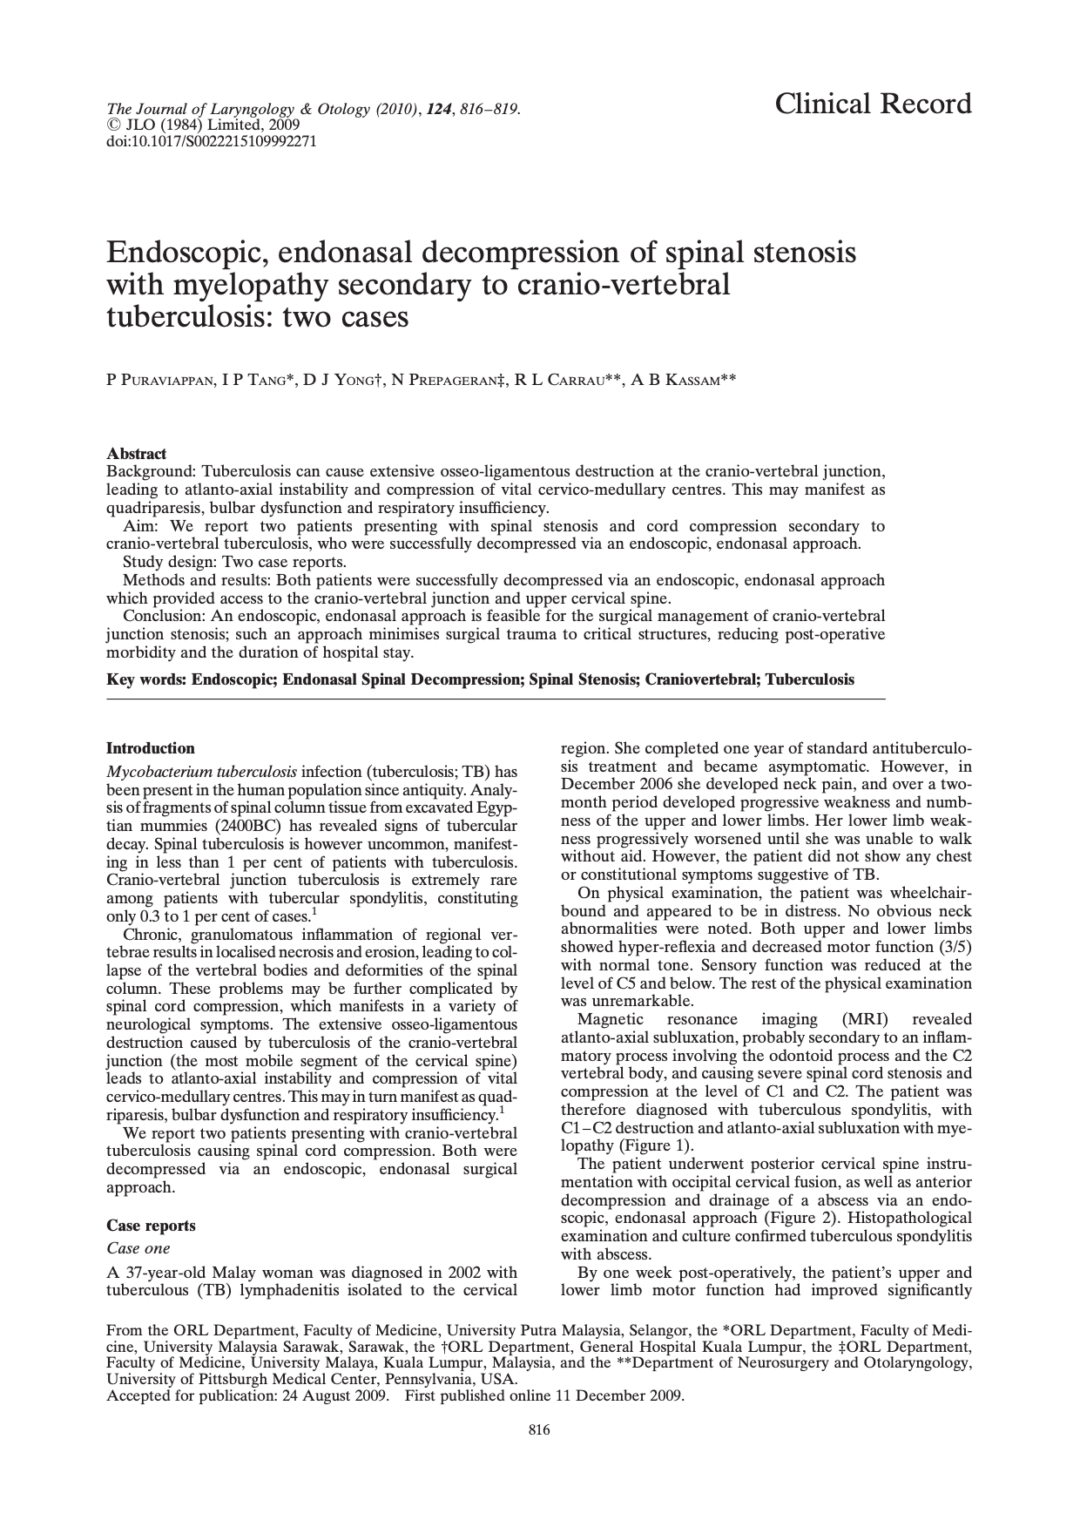 Endoscopic, endonasal decompression of spinal stenosis with myelopathy secondary to cranio-vertebral tuberculosis: two cases